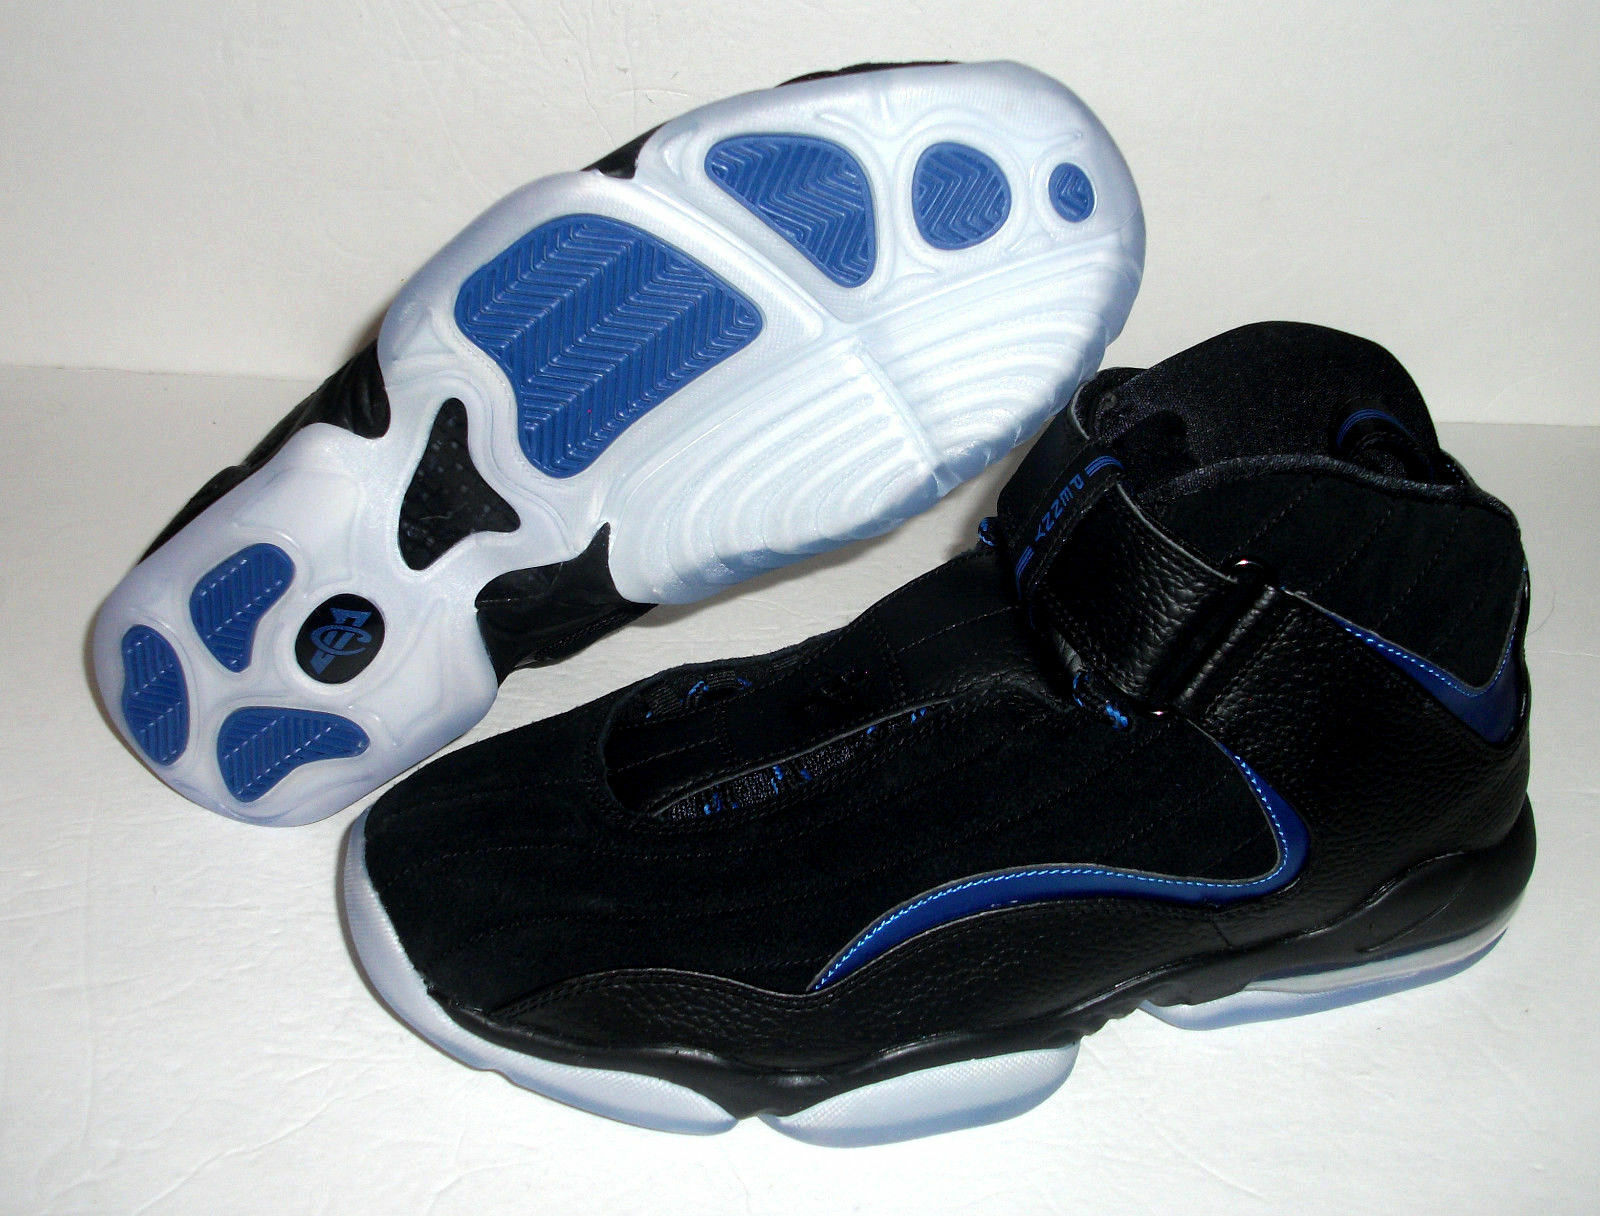 New Nike Air Penny IV 4 Basketball , Men's Comfortable Seasonal clearance sale